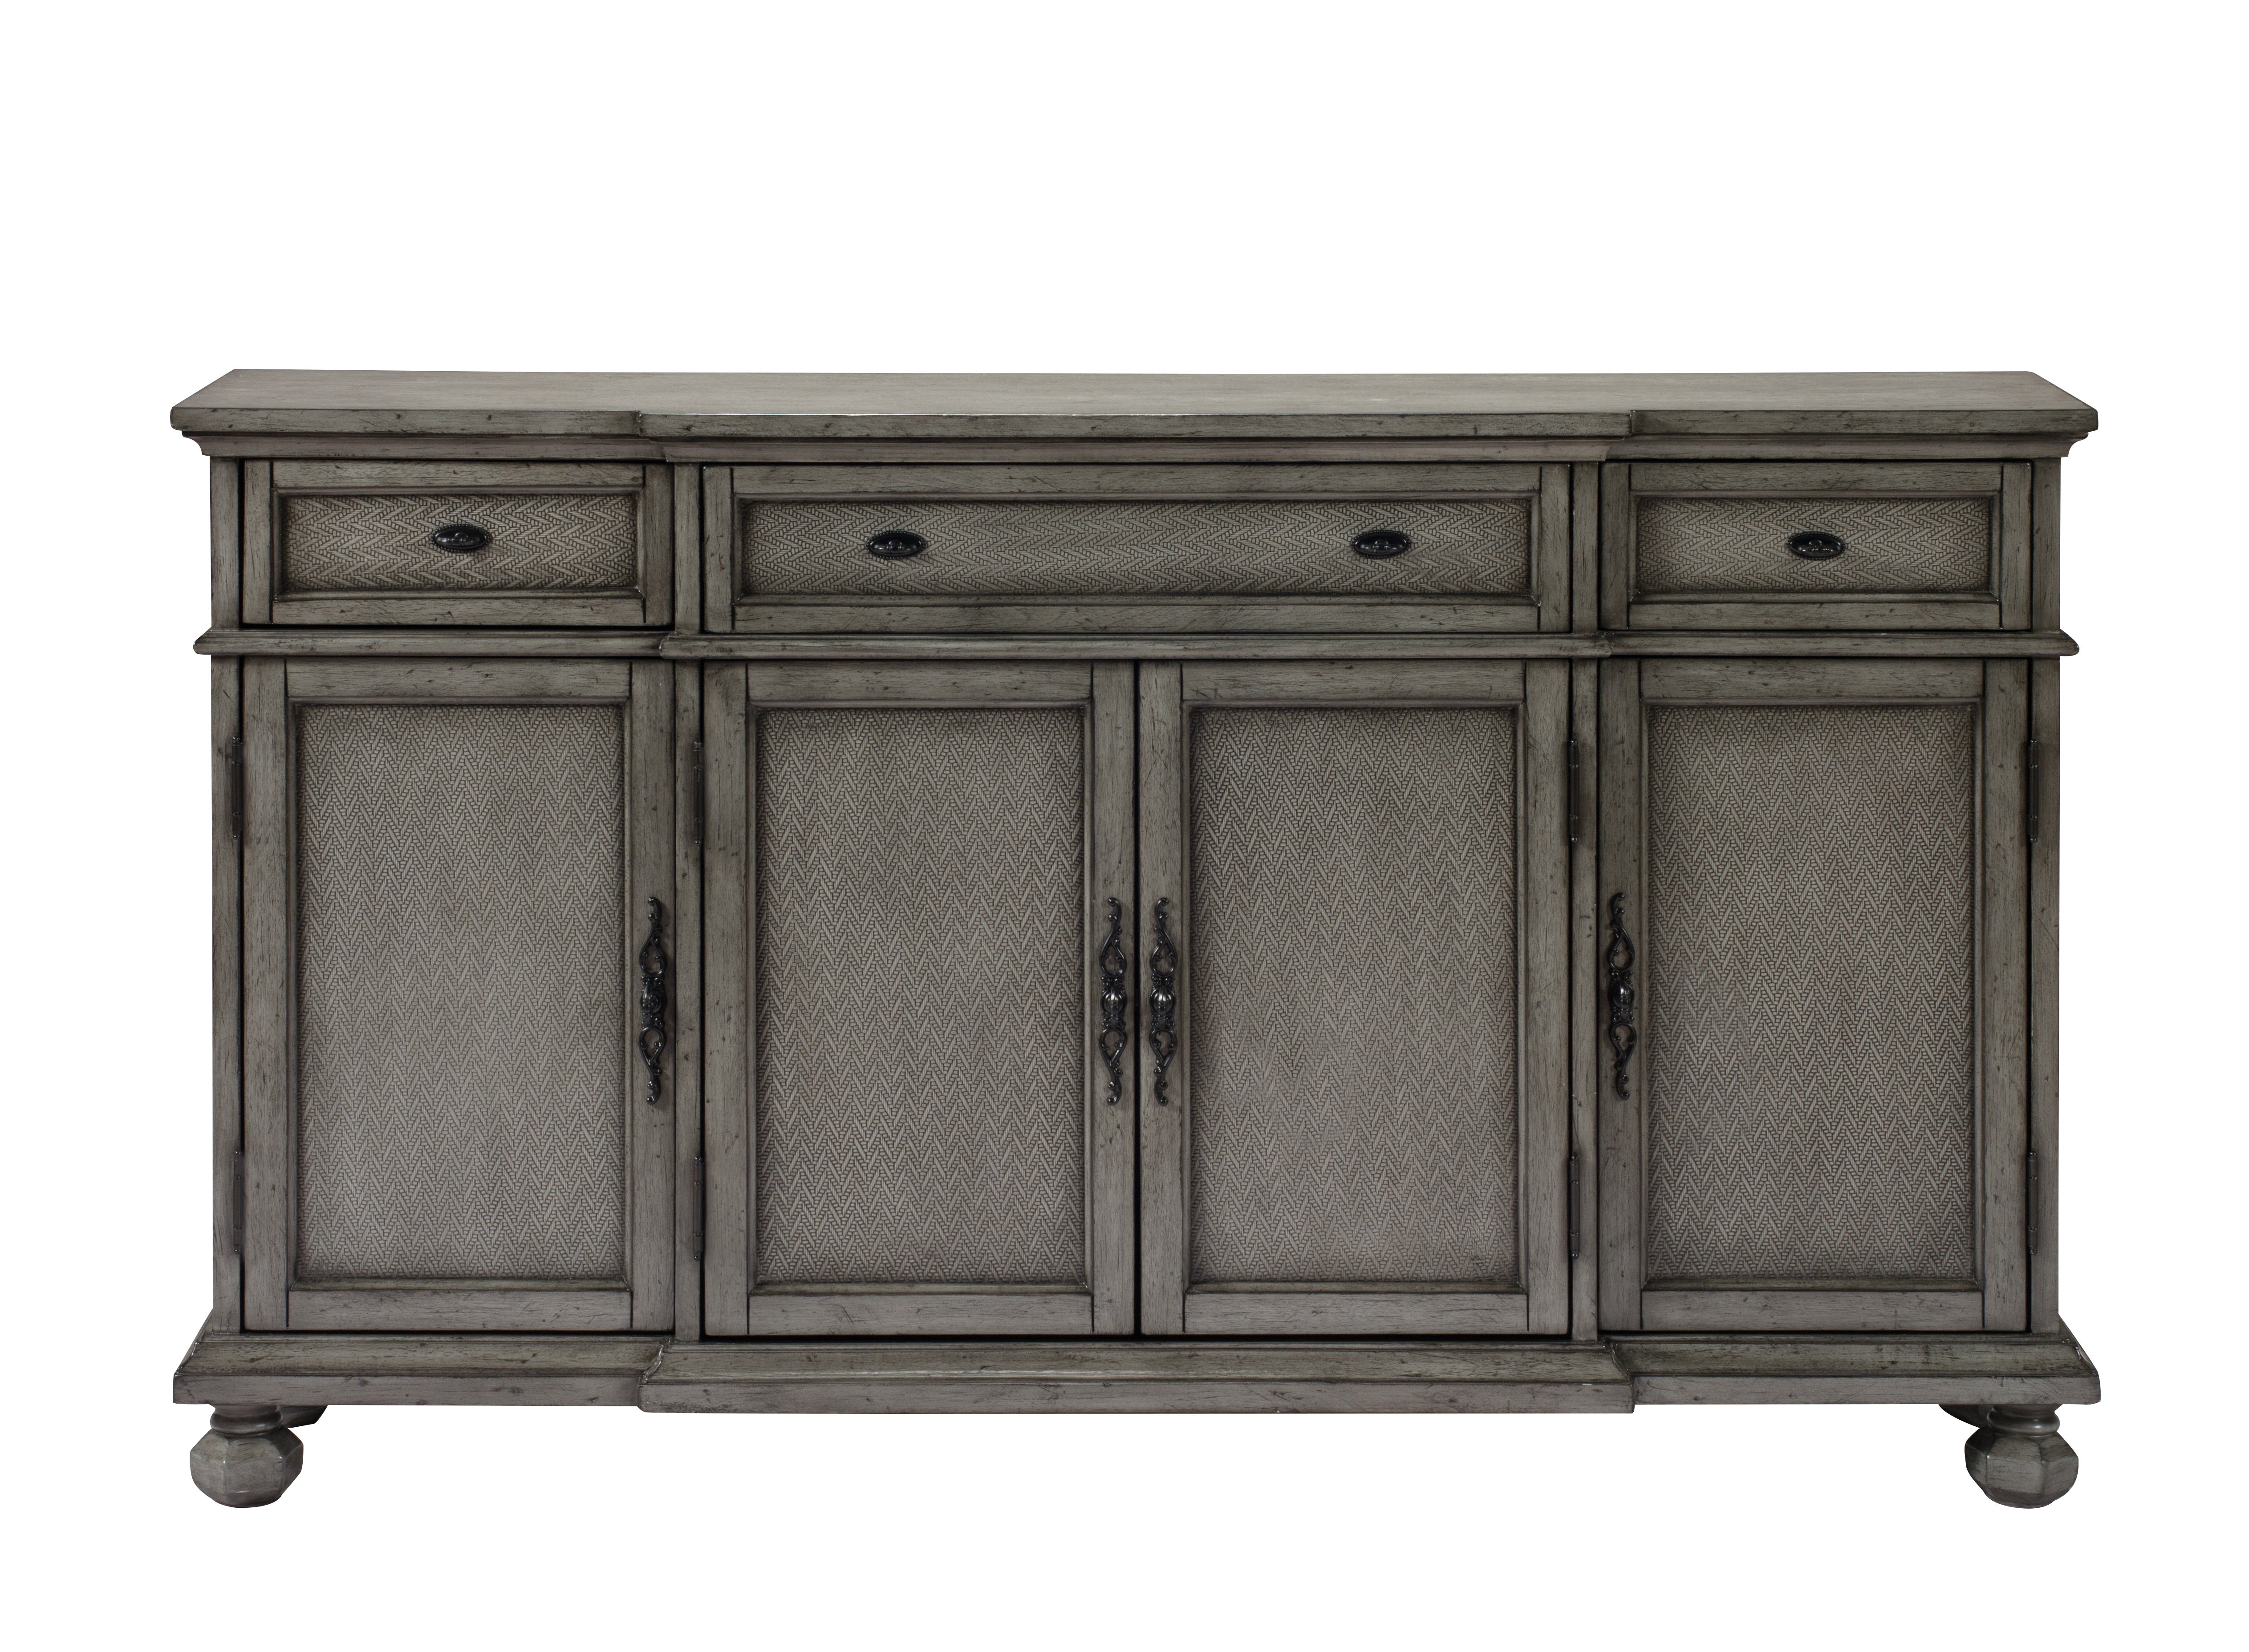 Sideboards & Credenzas | Joss & Main With Lainey Credenzas (View 17 of 20)